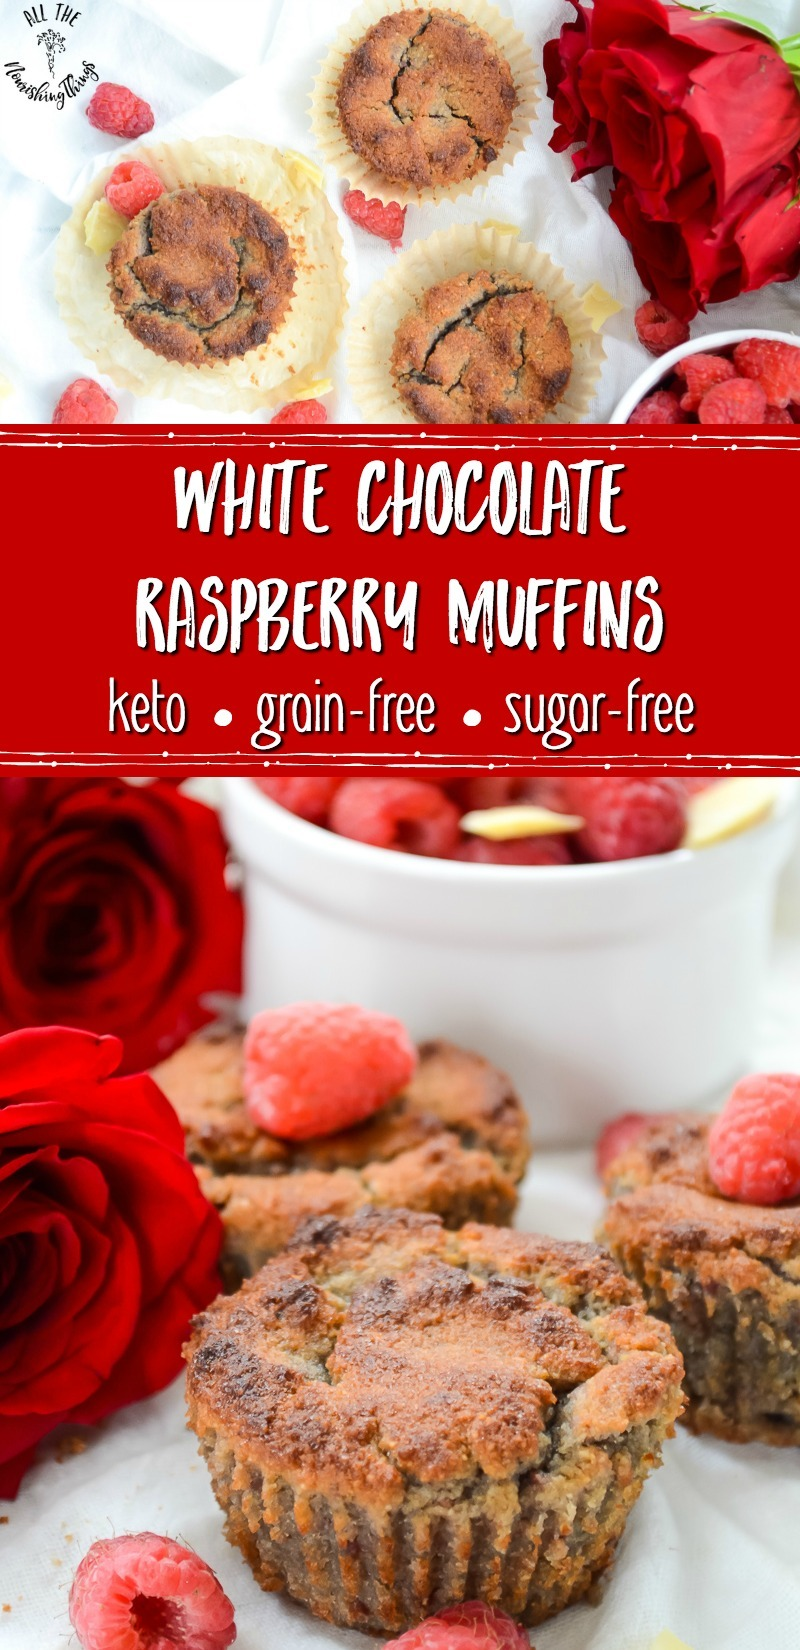 keto white chocolate raspberry muffins with red roses and fresh raspberries